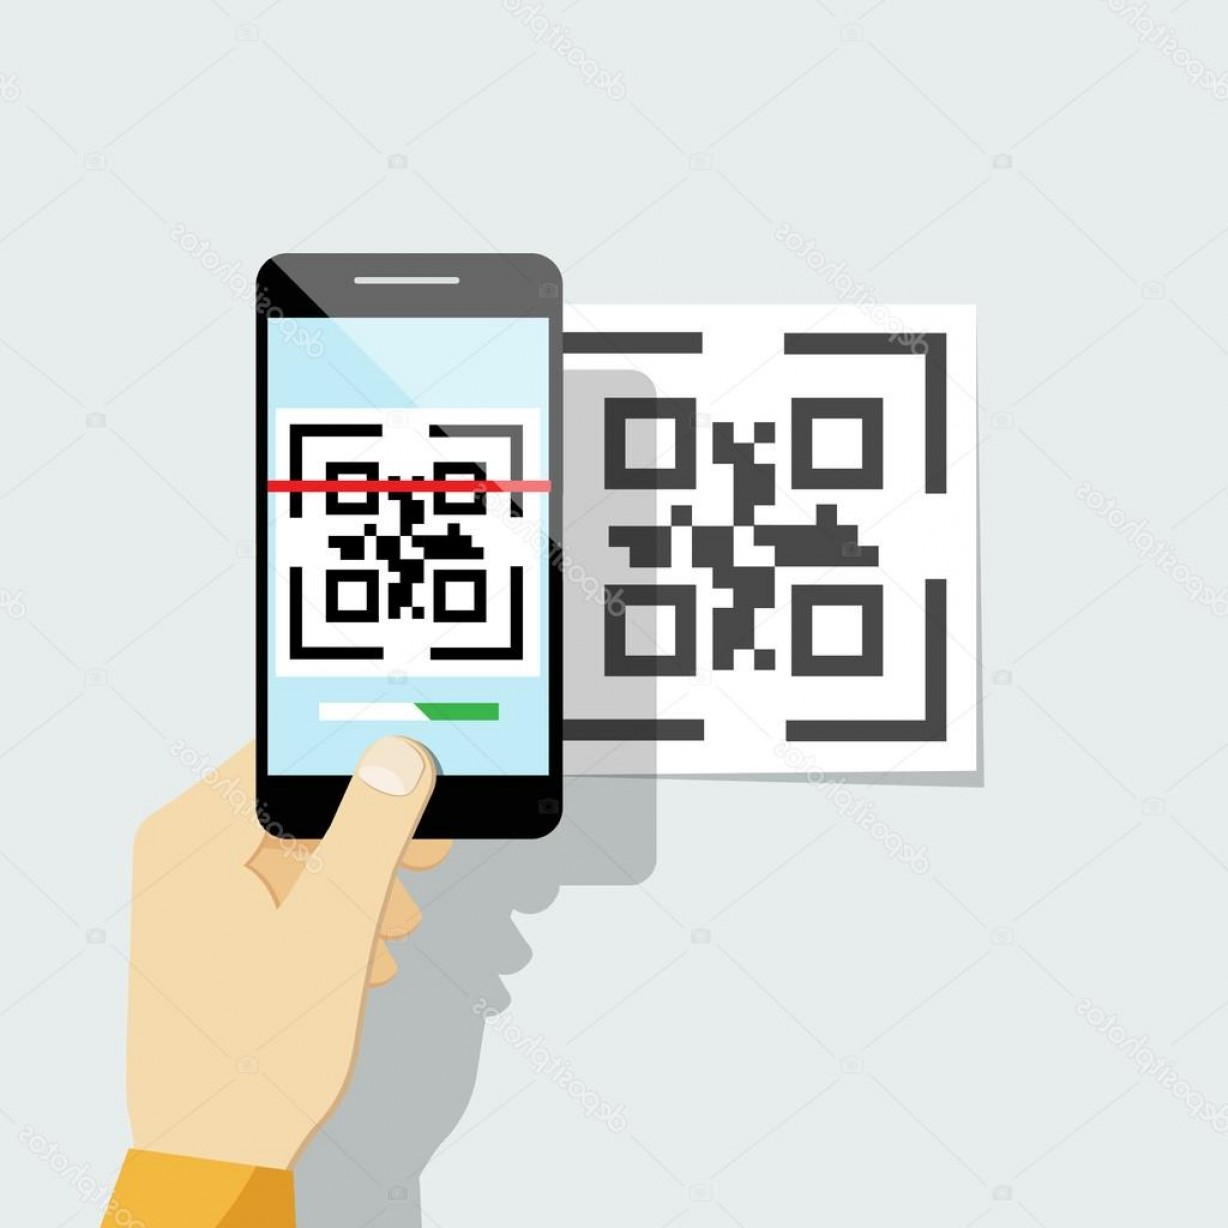 QR Mobile Phone Vector: Stock Illustration Capture Qr Code On Mobile